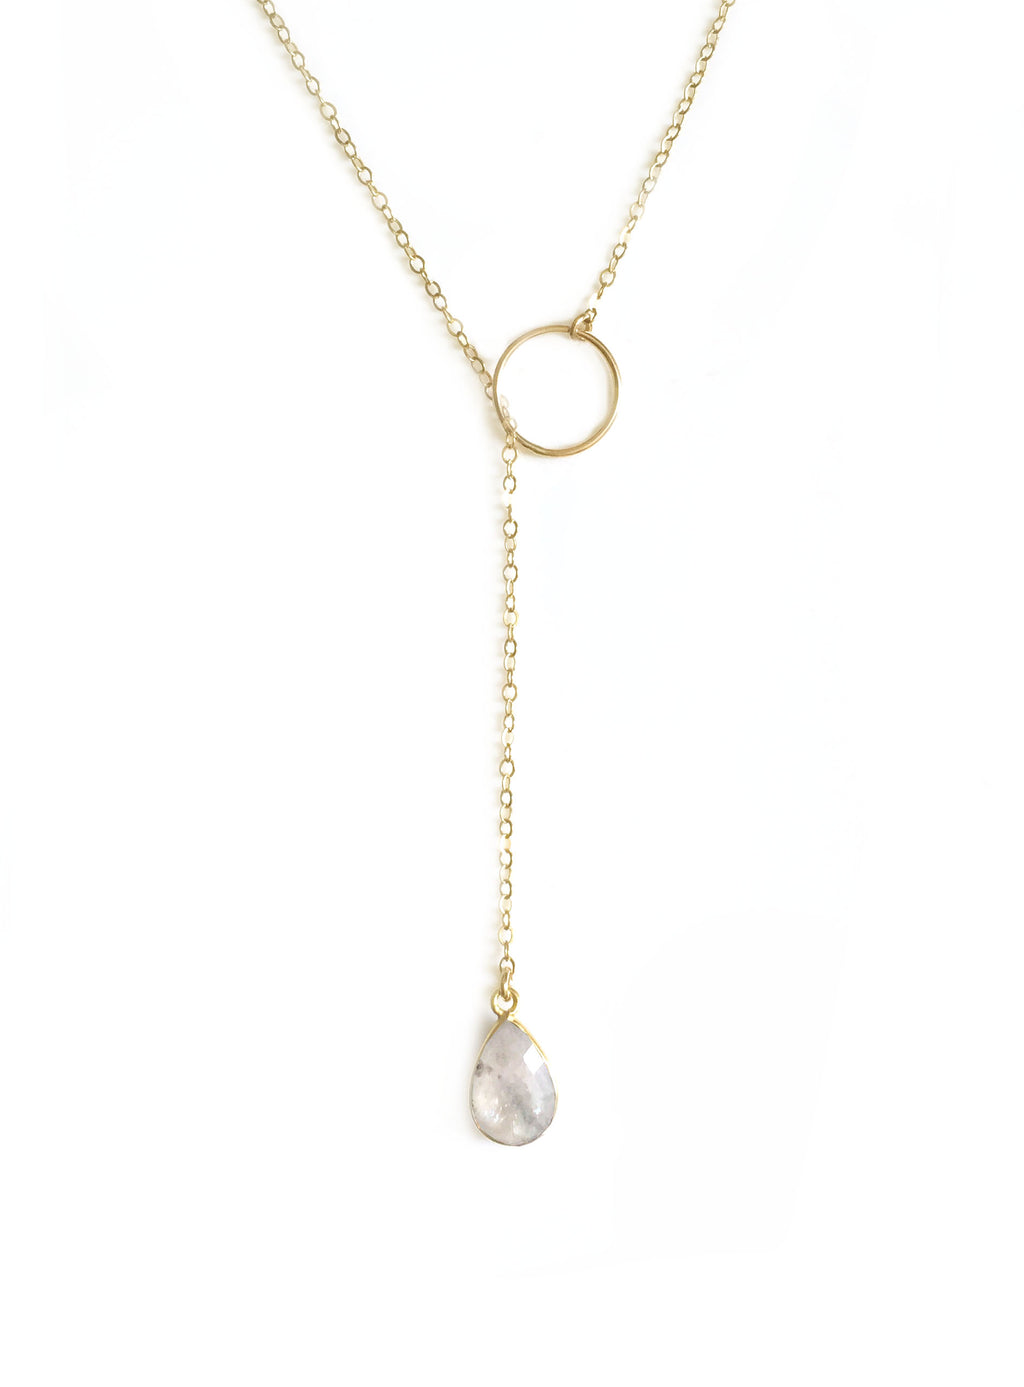 Moonstone Adjustable Lariat